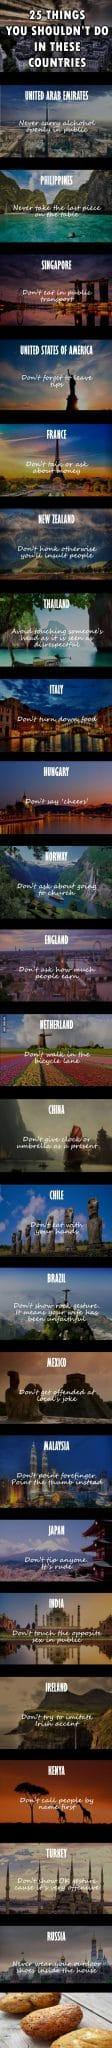 25-Things You Shouldn't Do In These Countries